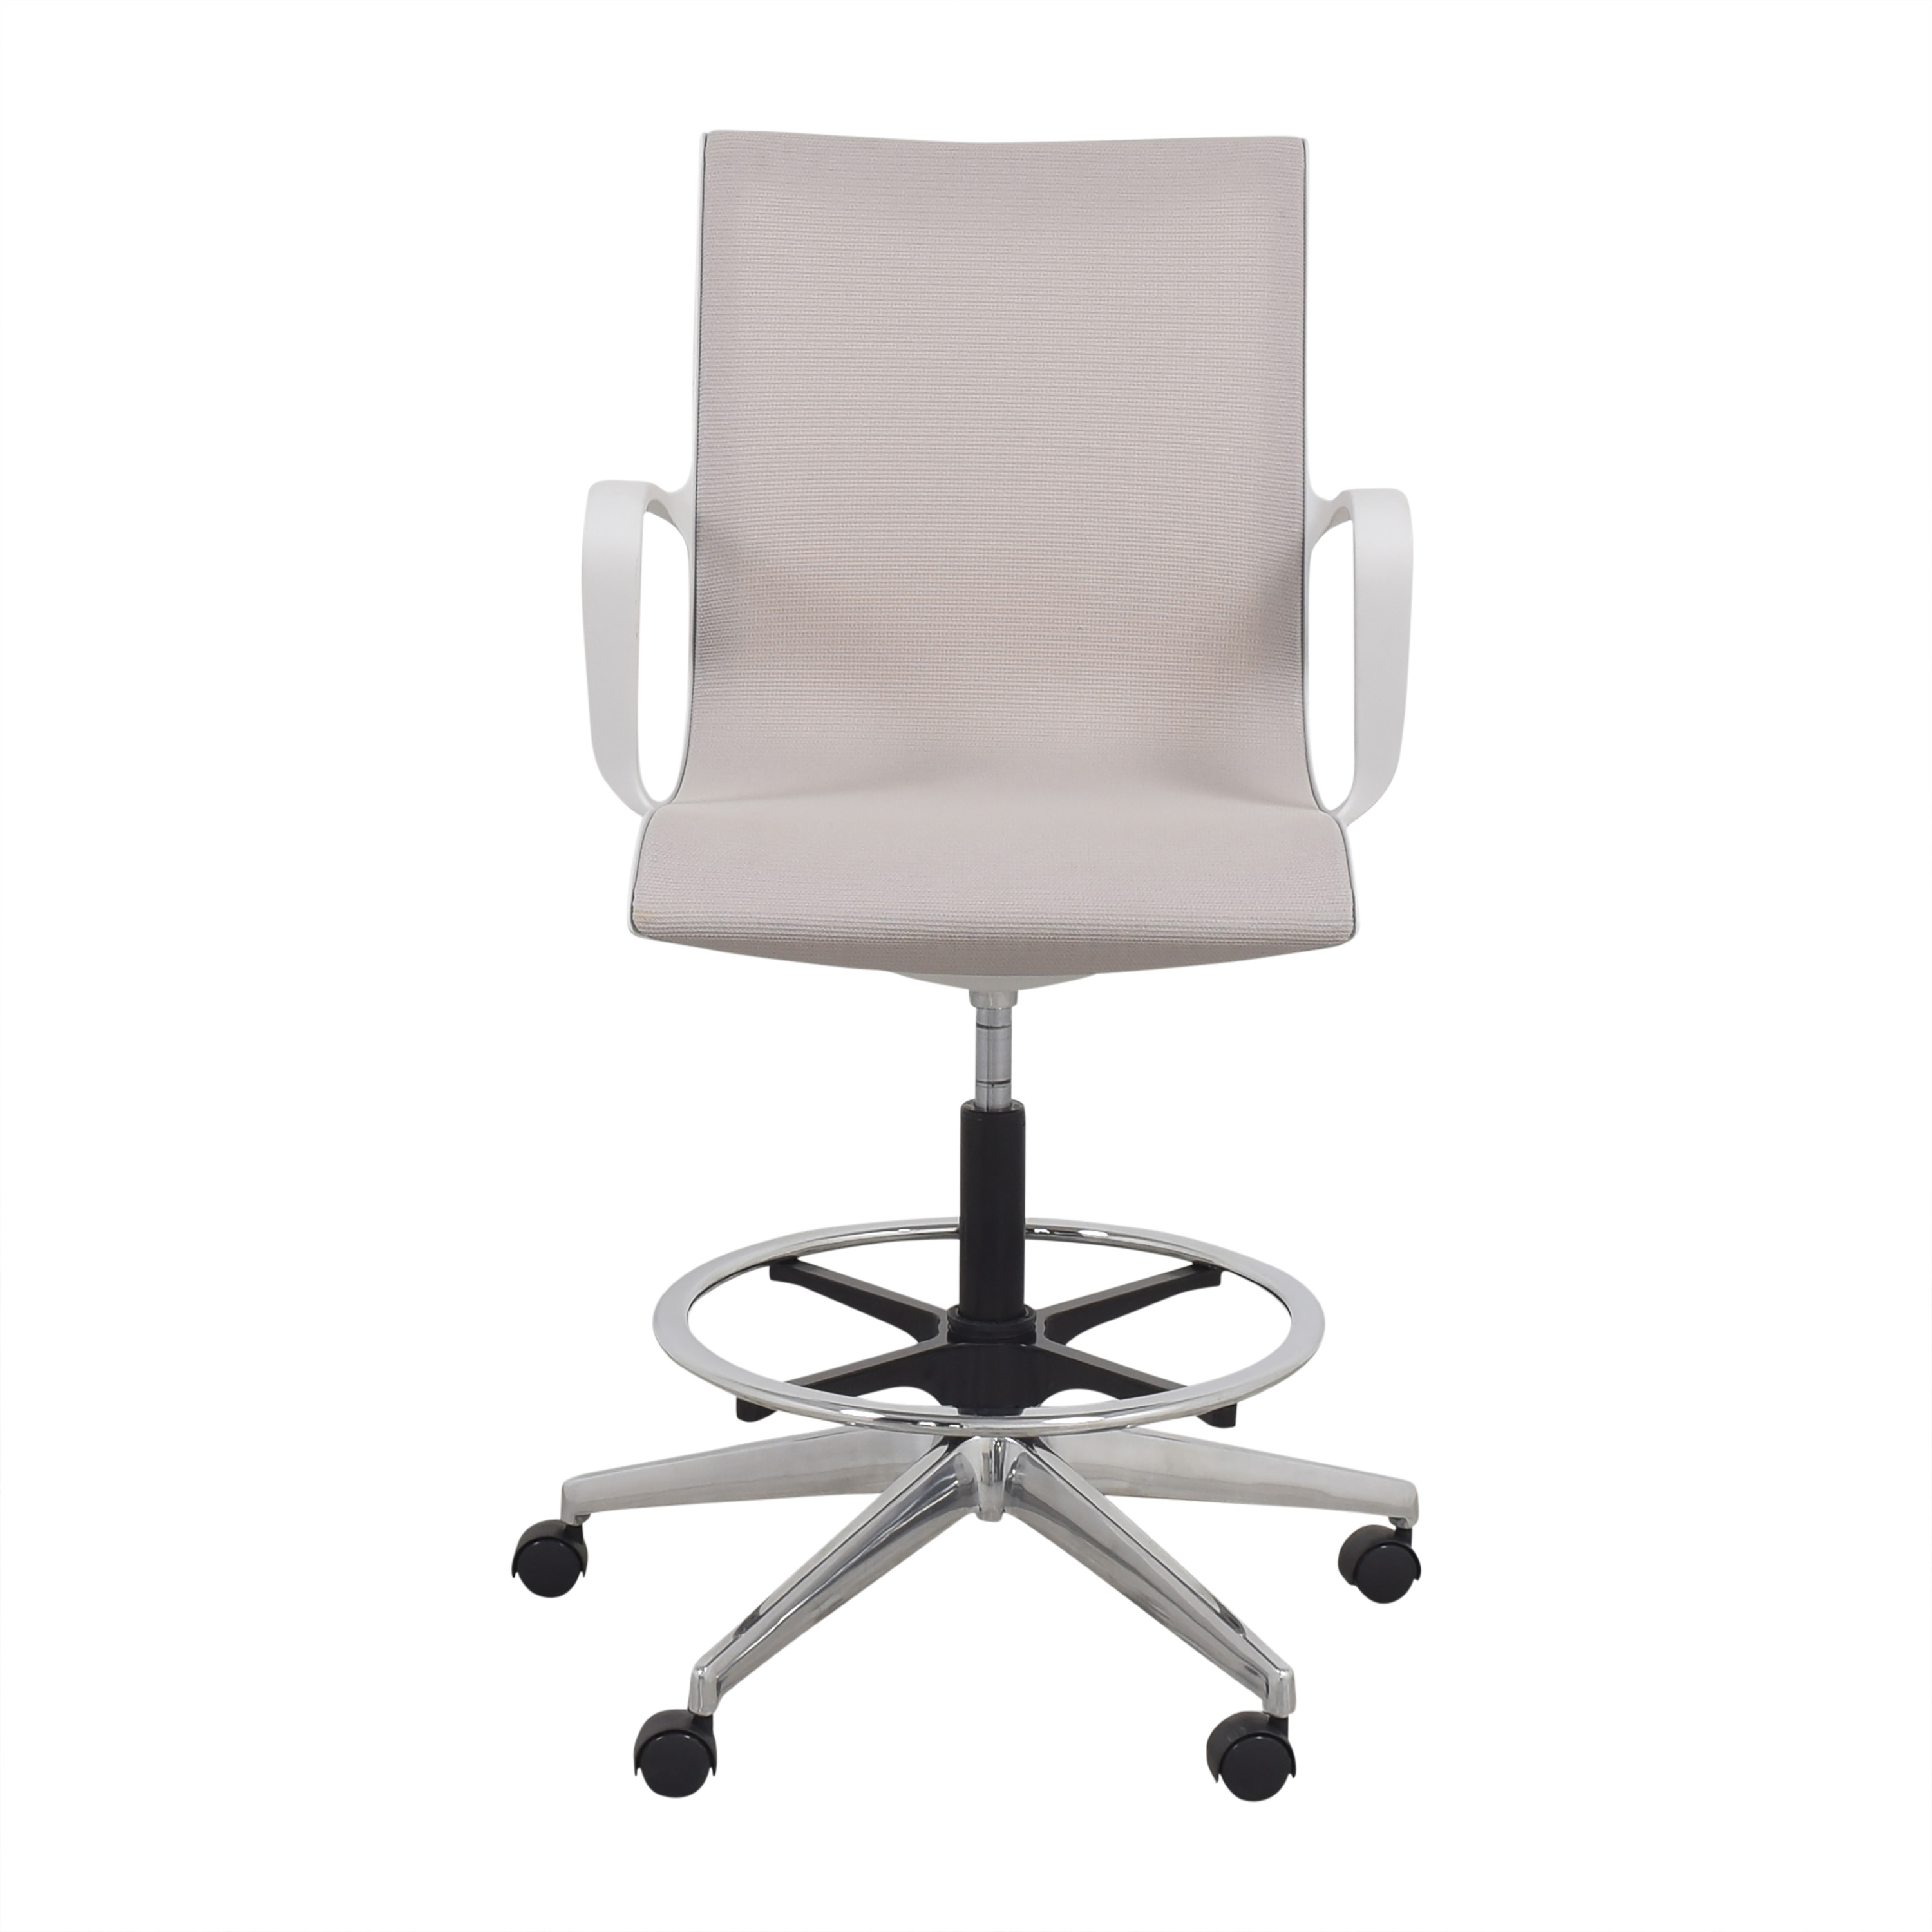 Global Furniture Group Global Furniture Group Solar Stool white and gray